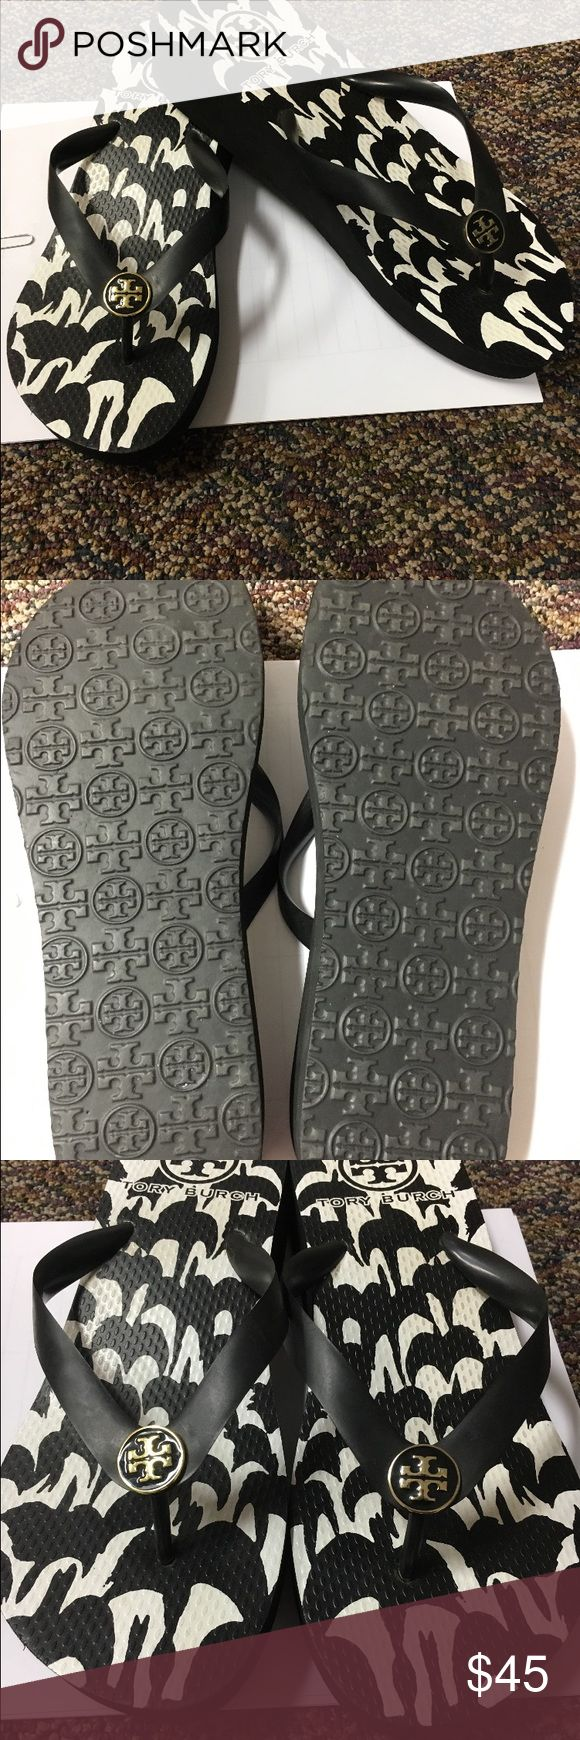 Tory burch wedge flip flops Black and white wedge only worn once Tory Burch Shoes Sandals